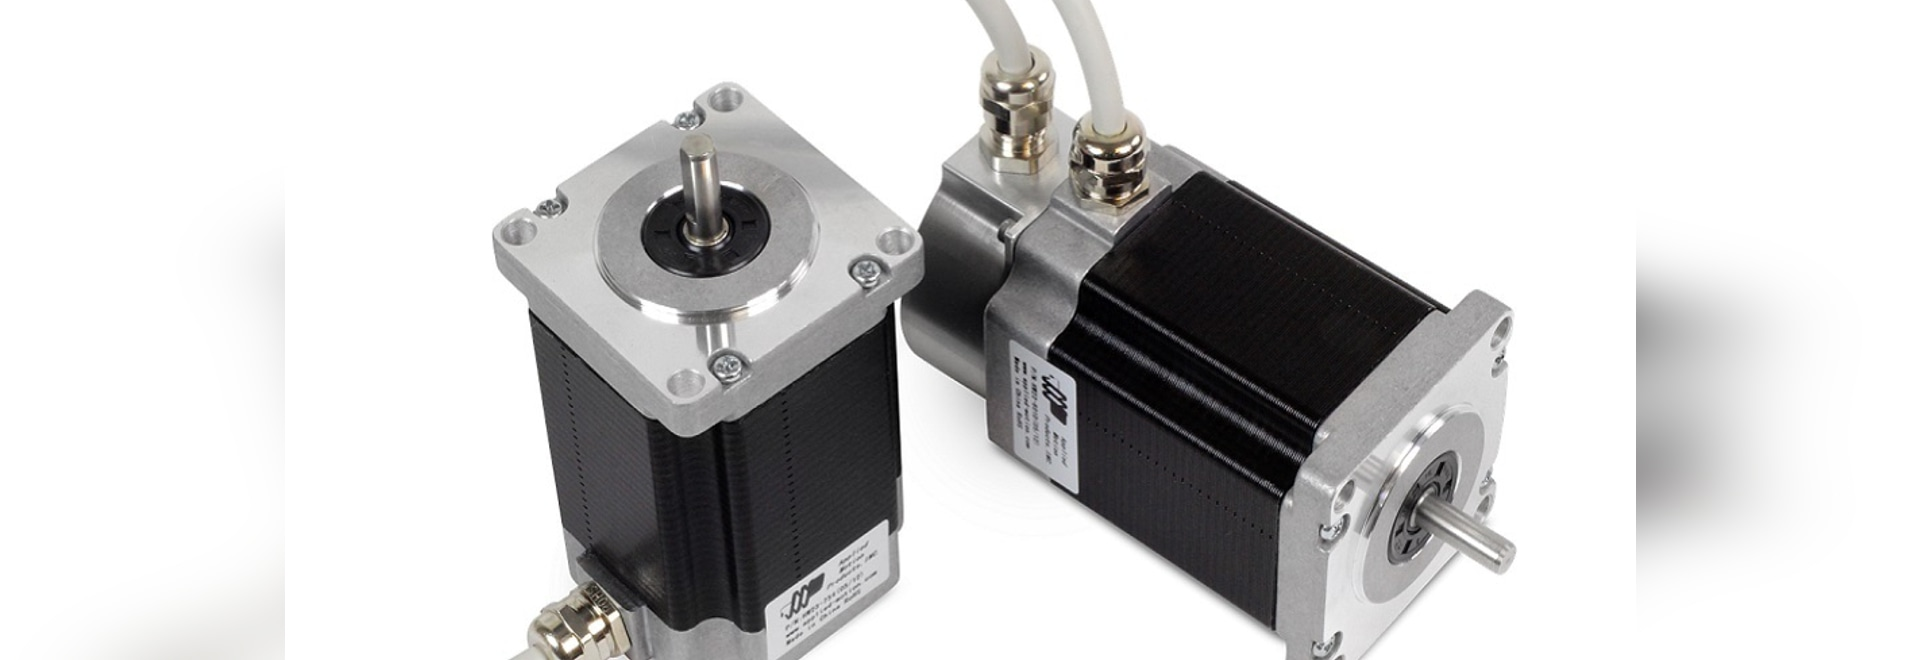 These IP65-rated step motors are available in NEMA sizes 23, 24 and 34.